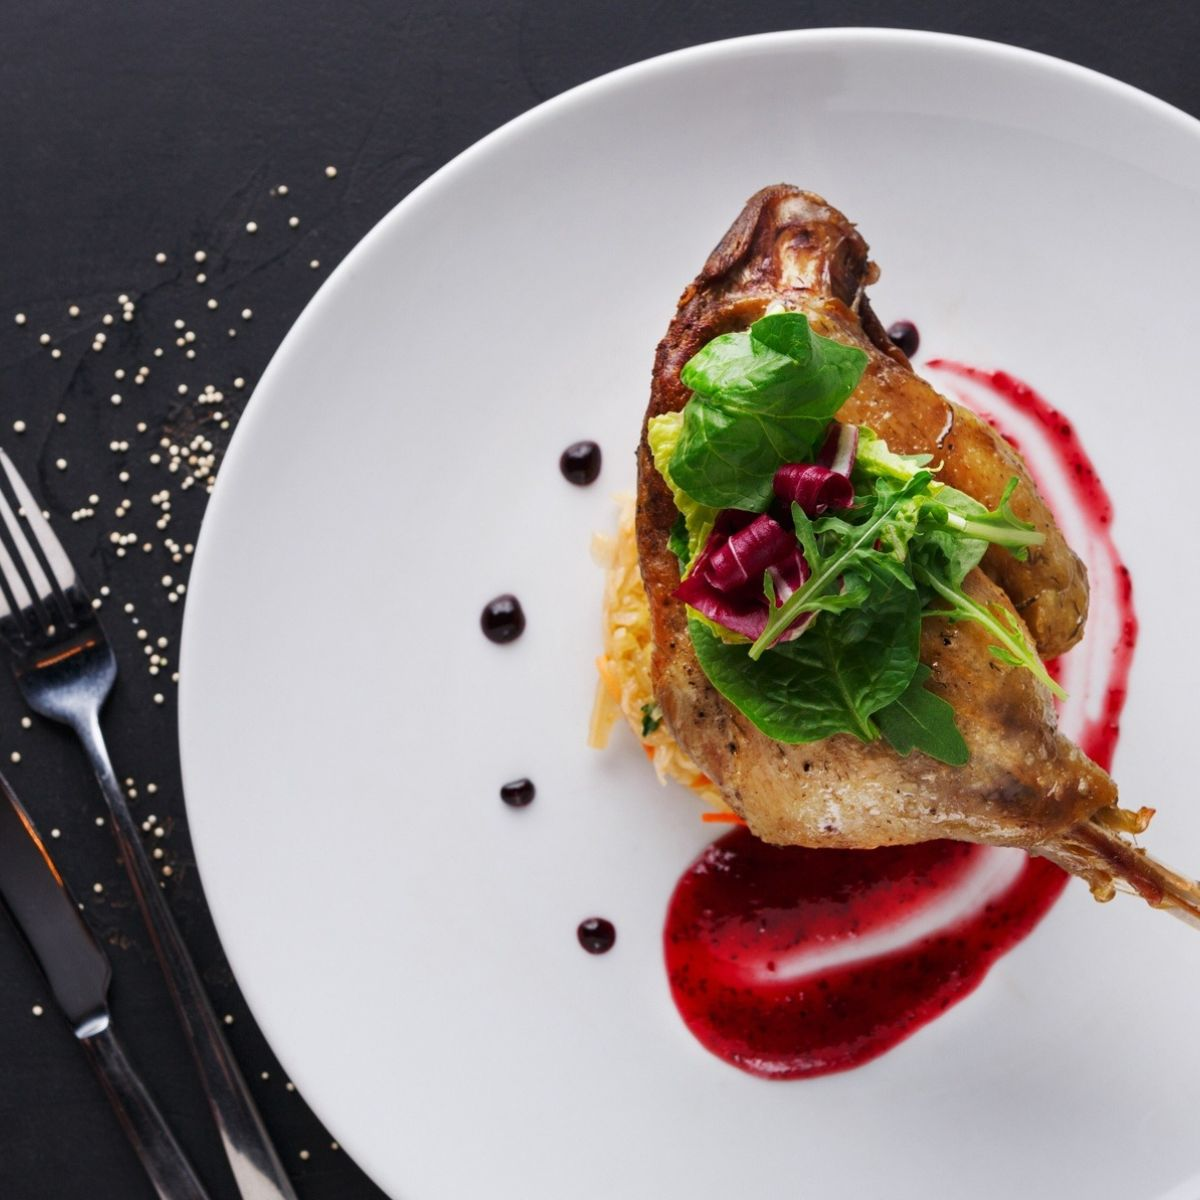 4da6f0ec The 100 best restaurants, cafes and places to eat in Ireland 2018